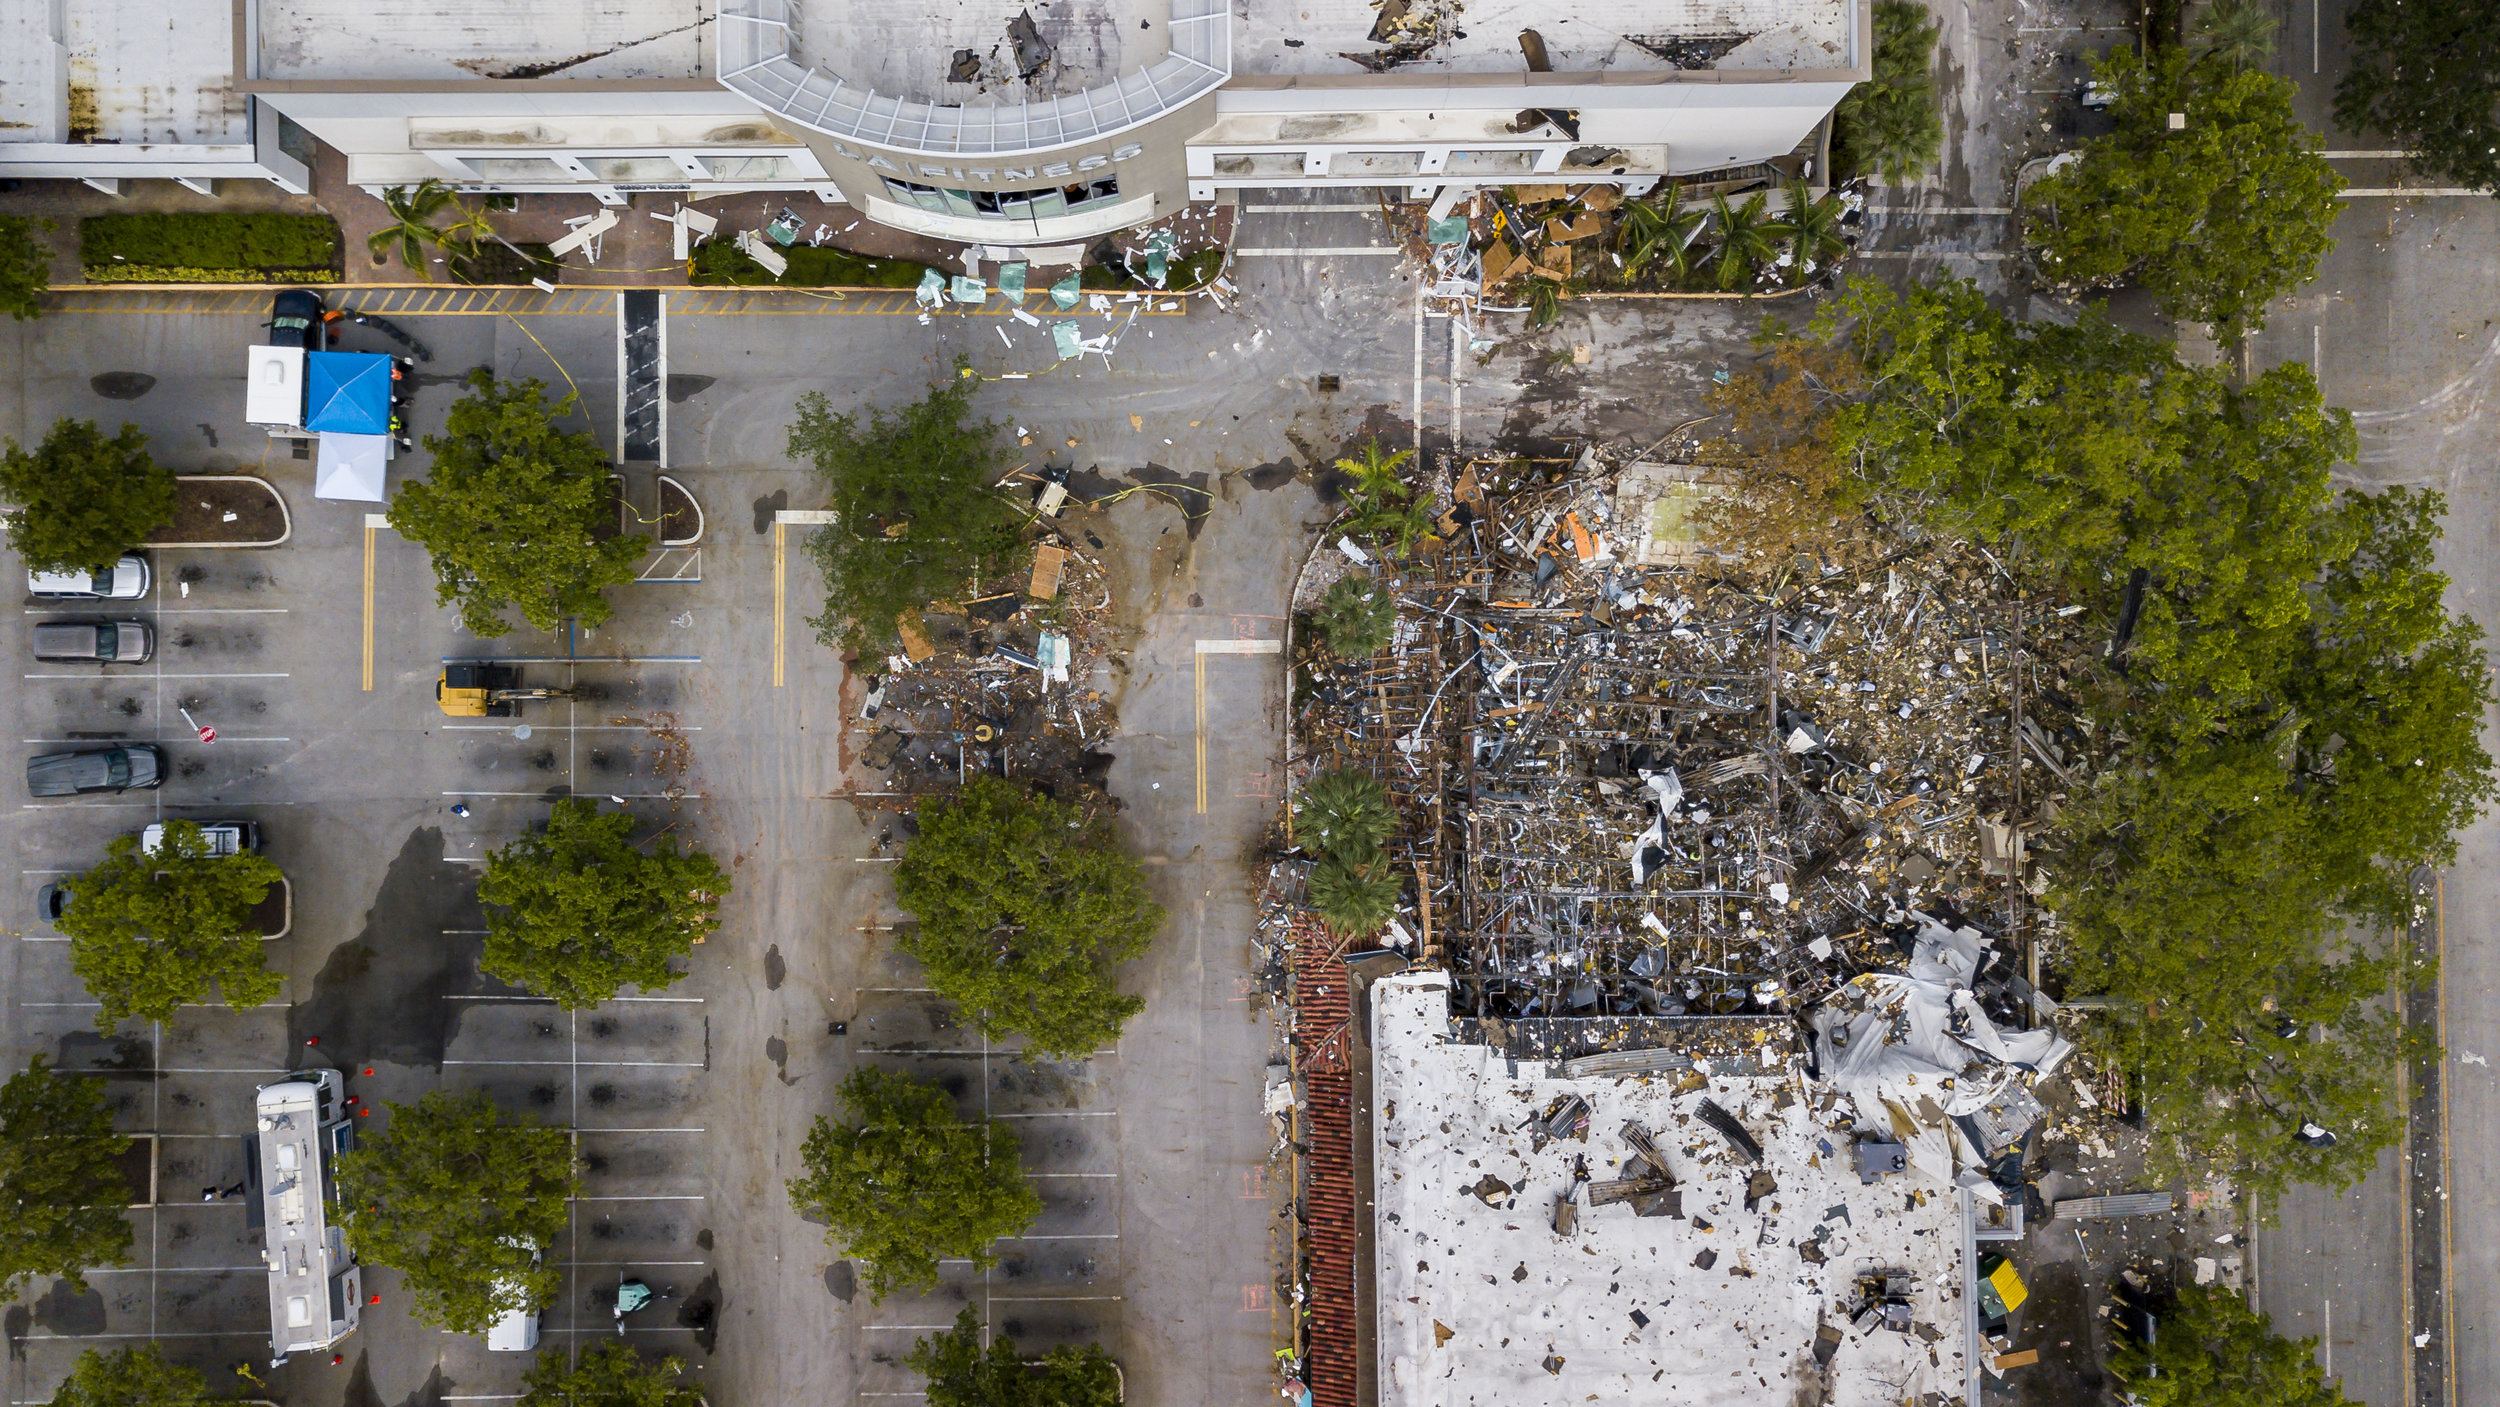 Police work the scene and clear debris three days after an explosion leveled The Fountains shopping plaza in Plantation, Florida on Tuesday, July 9, 2019. The explosion, which happened on July 6, 2019, injured 23 and left a pizza parlor demolished.